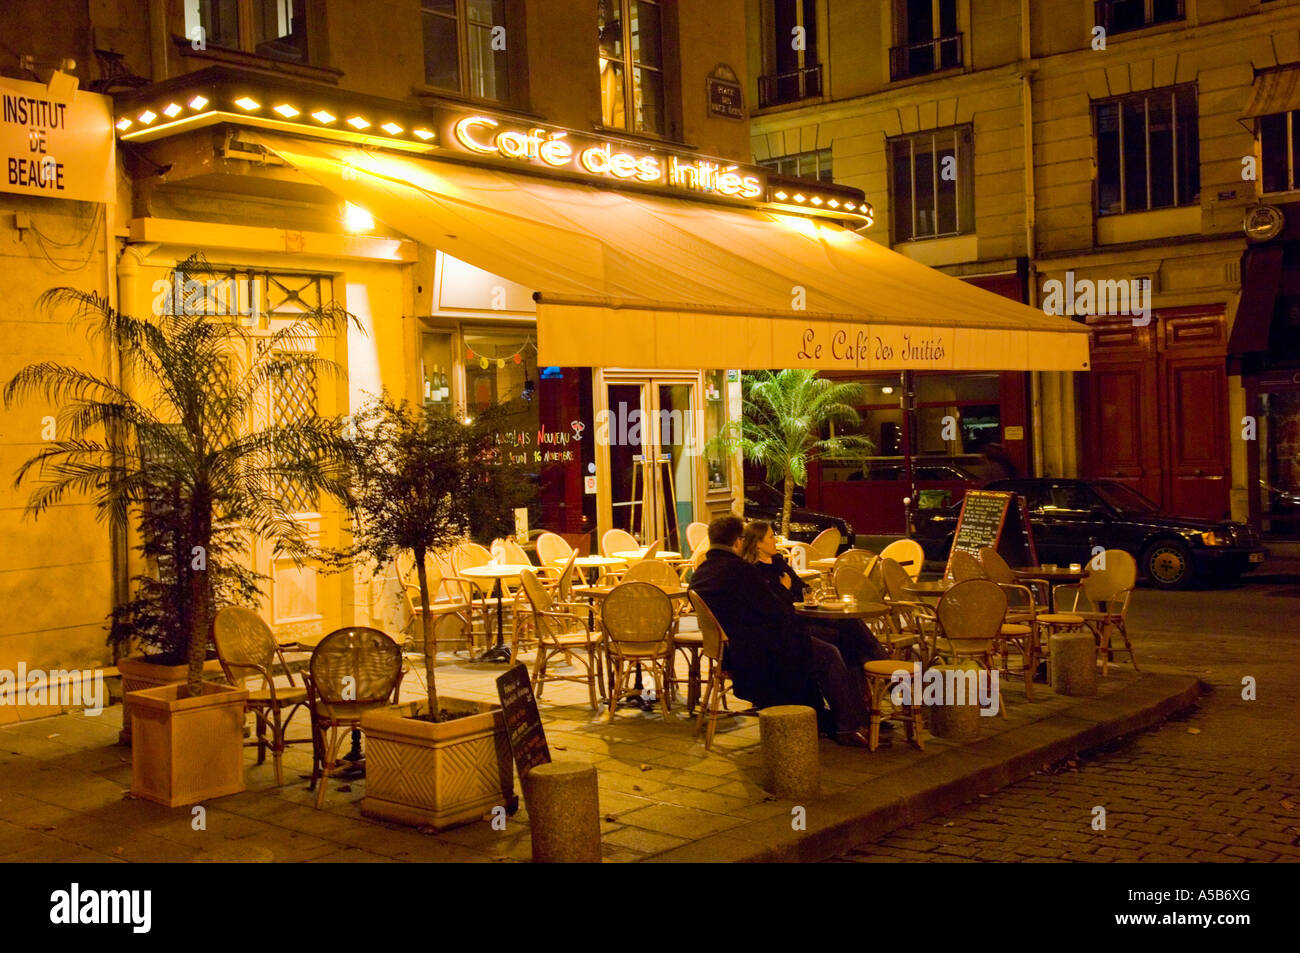 Les Halles Restaurant Valence Cafe Couple France Stockfotos Cafe Couple France Bilder Seite